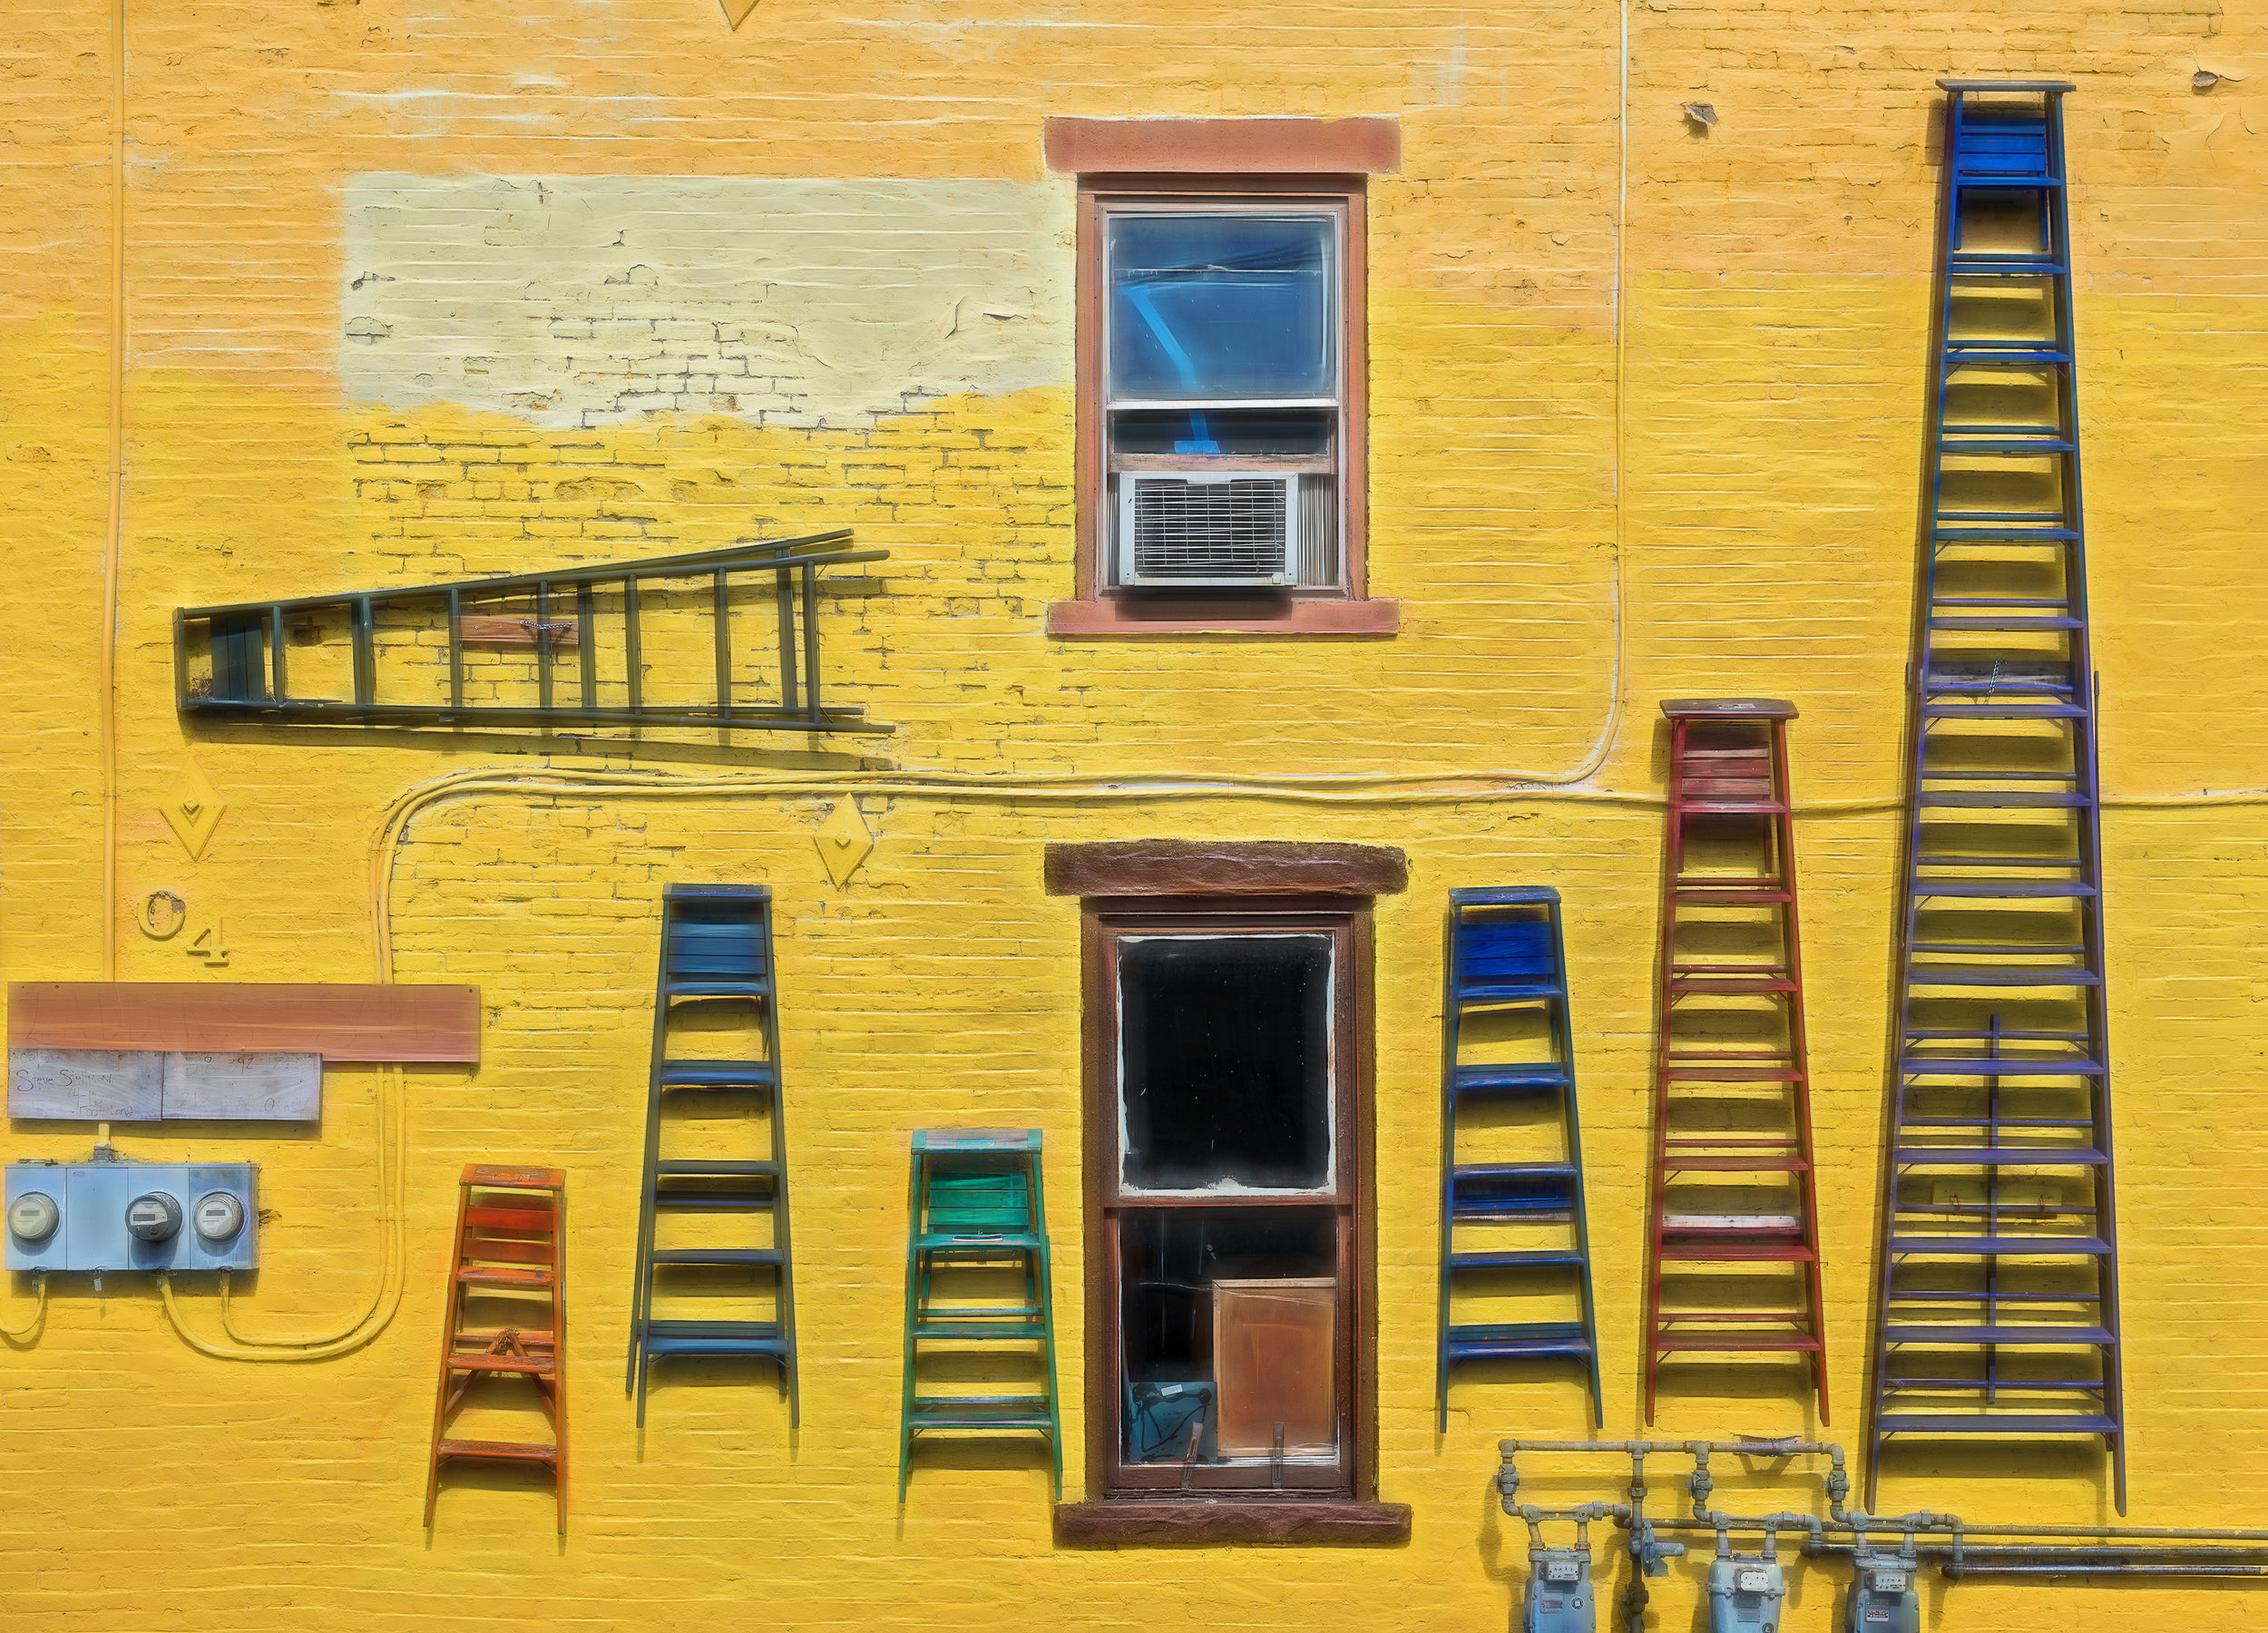 Ladders to Nowhere - Nikon D750, 1/400 @ f/9.0, ISO160, 52mm. Yes, this building does exist! It's in the city of Hudson in New York State. Call it urban art writ large. I love it! Anyway, it makes for a fun photograph.